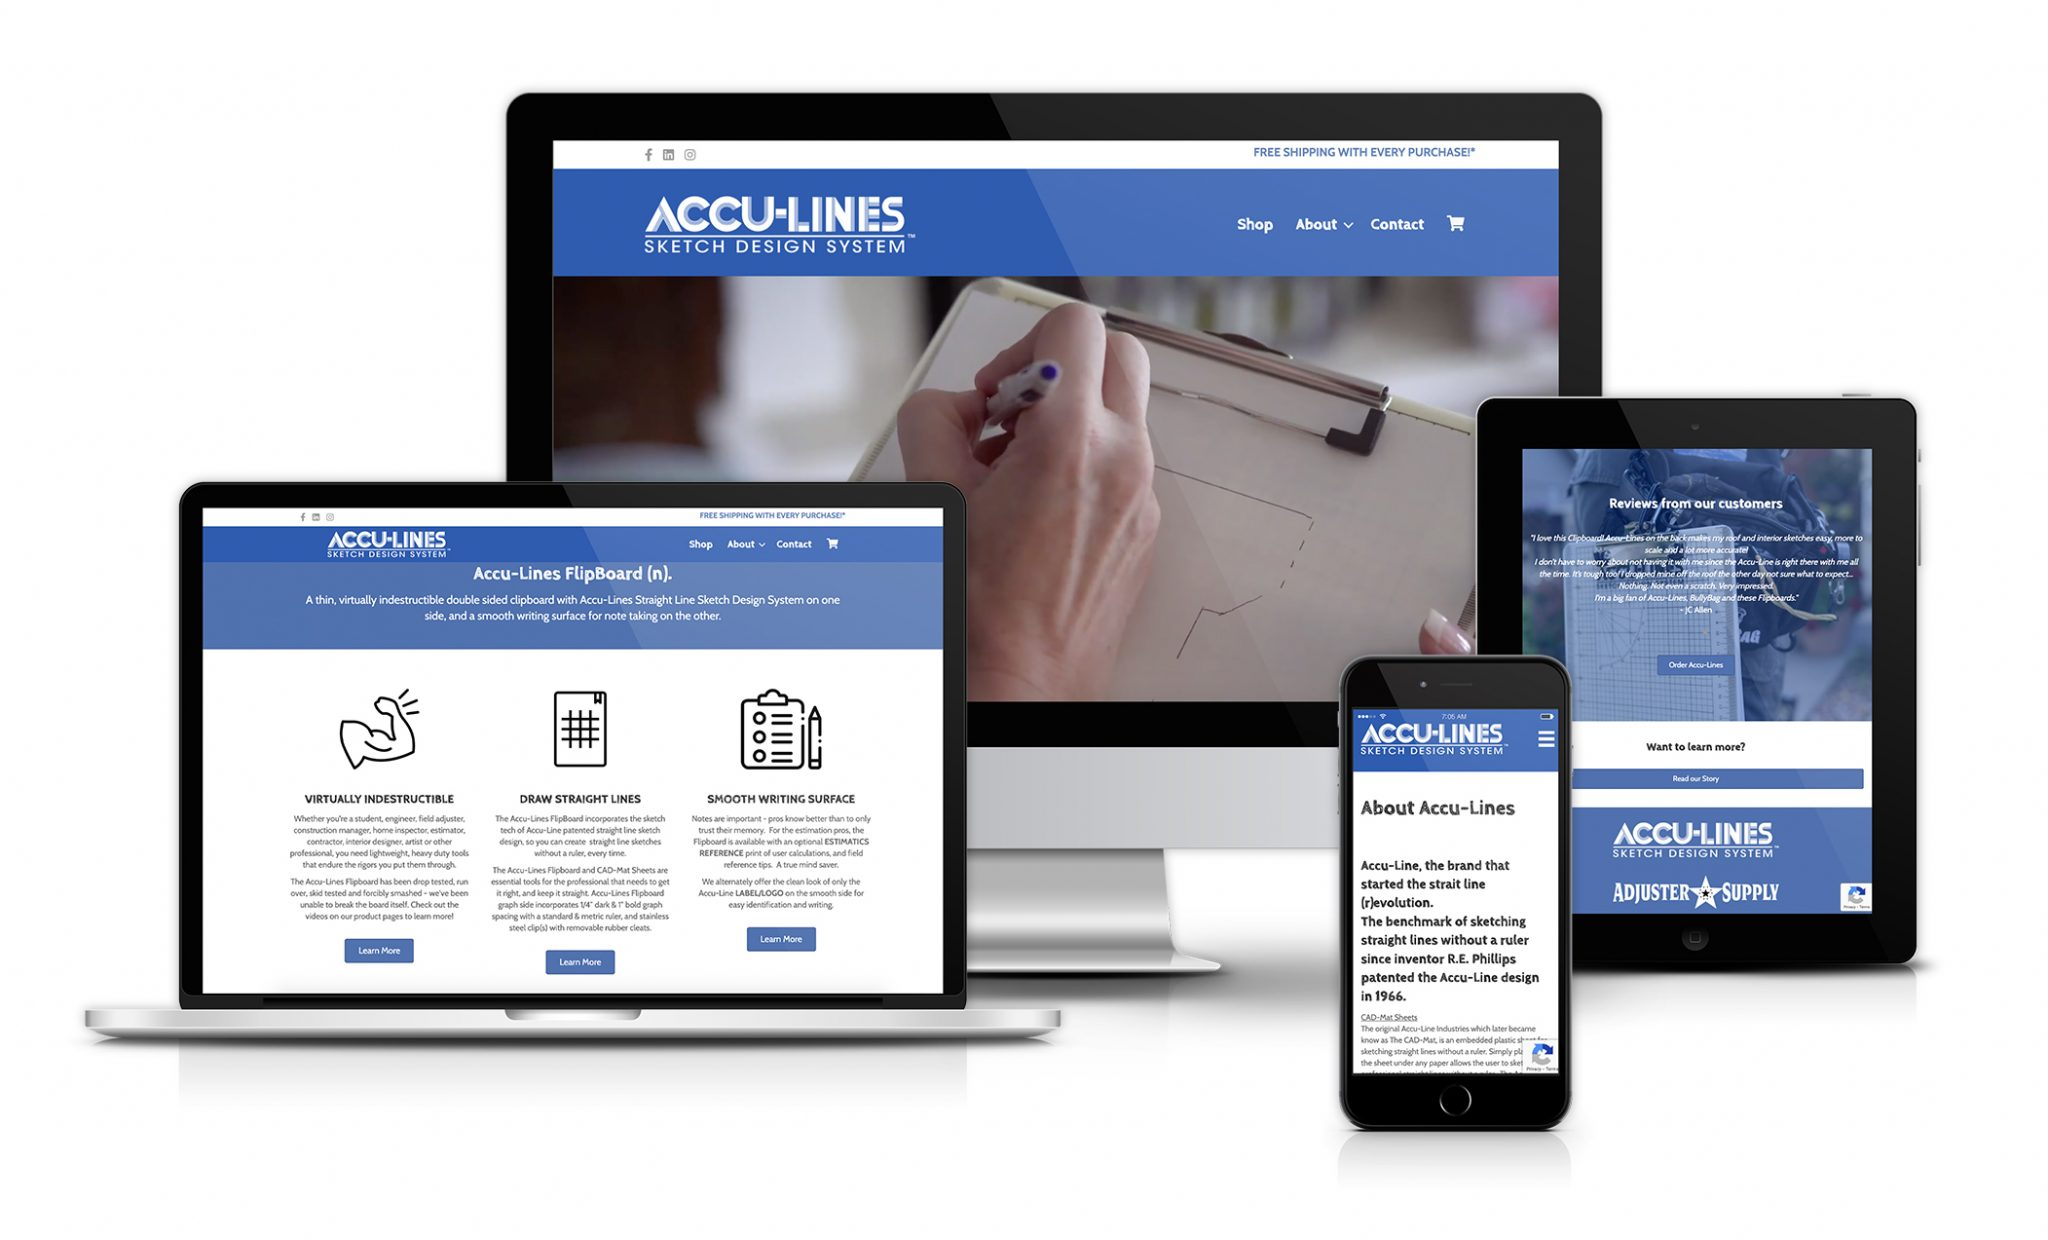 acculines